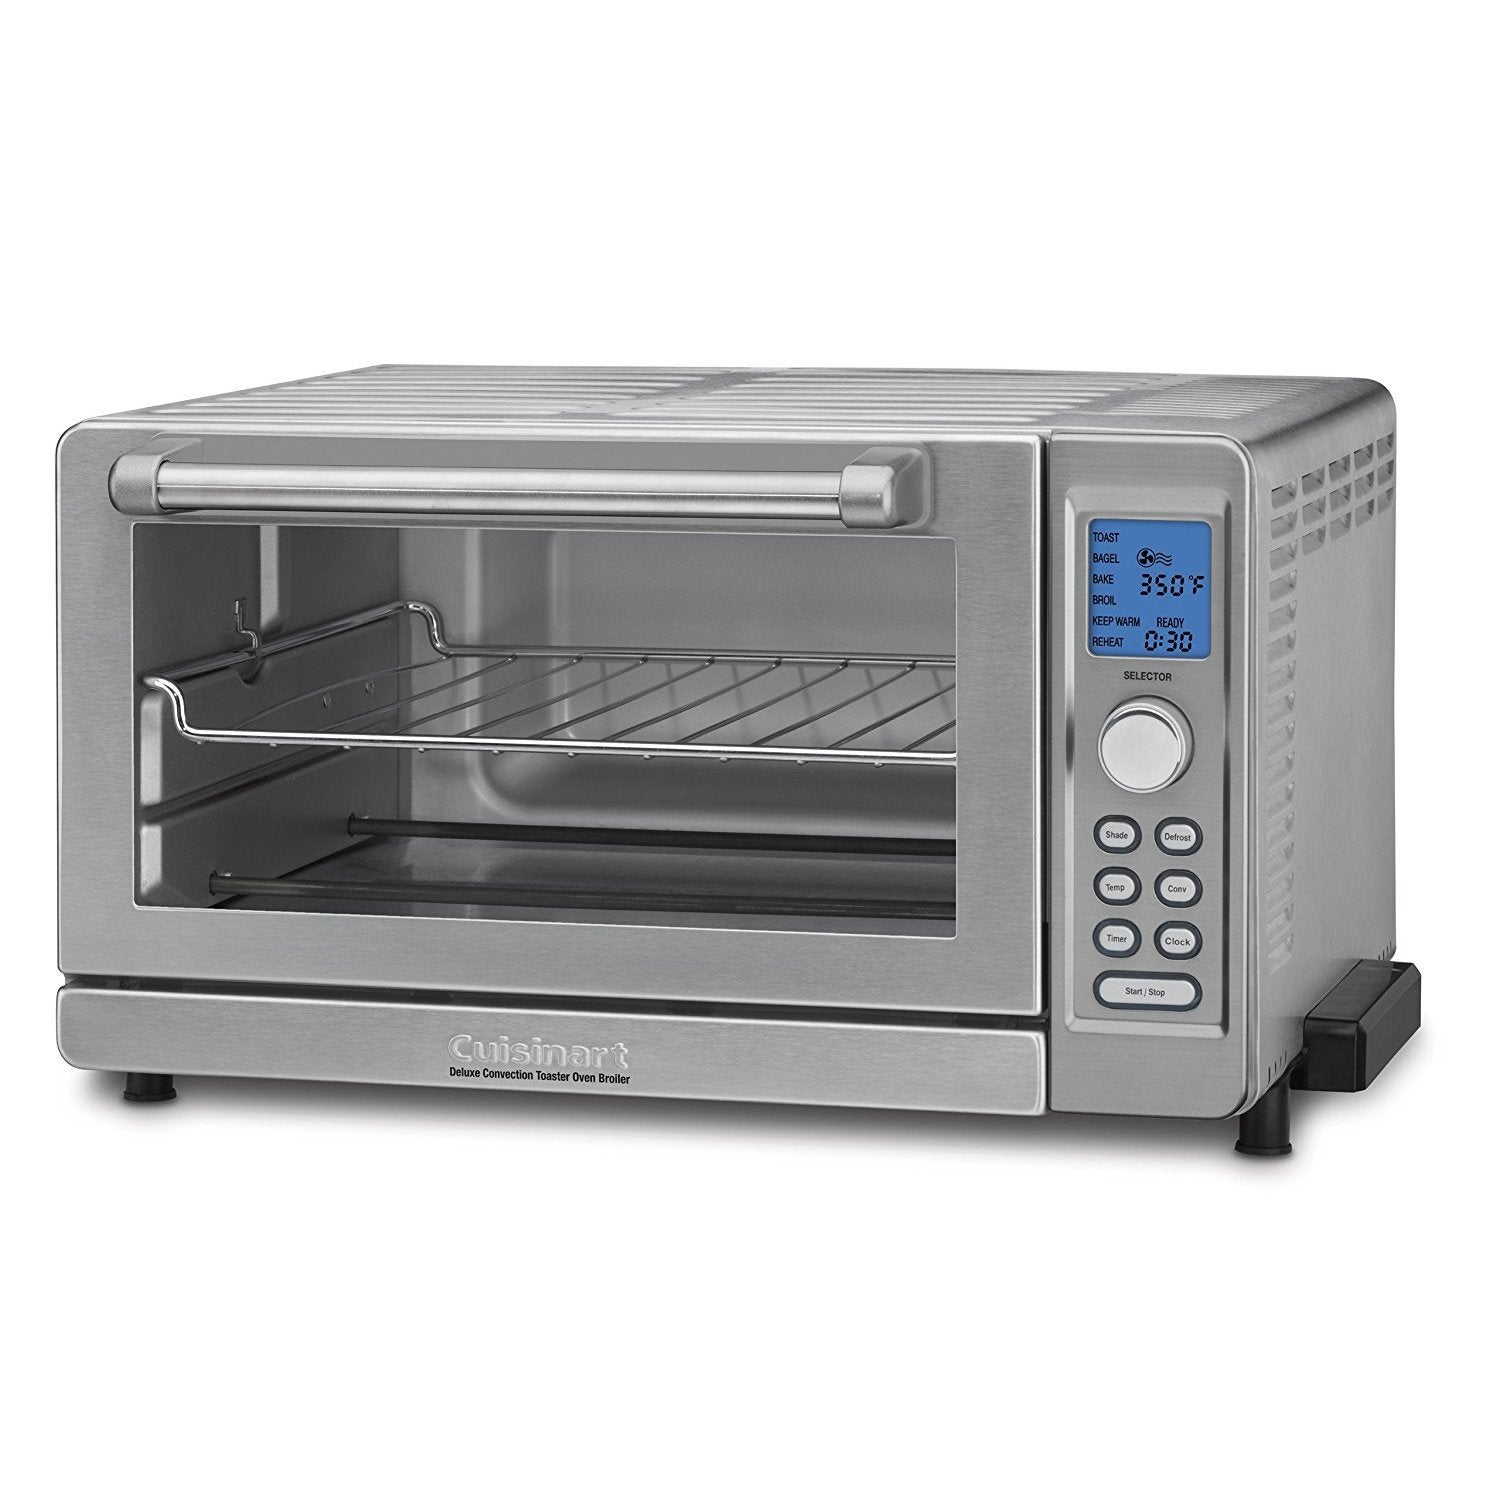 200694de241 Shop Cuisinart TOB-135 Deluxe Convection Toaster Oven Broiler (Refurbished)  - Free Shipping Today - Overstock - 14291009